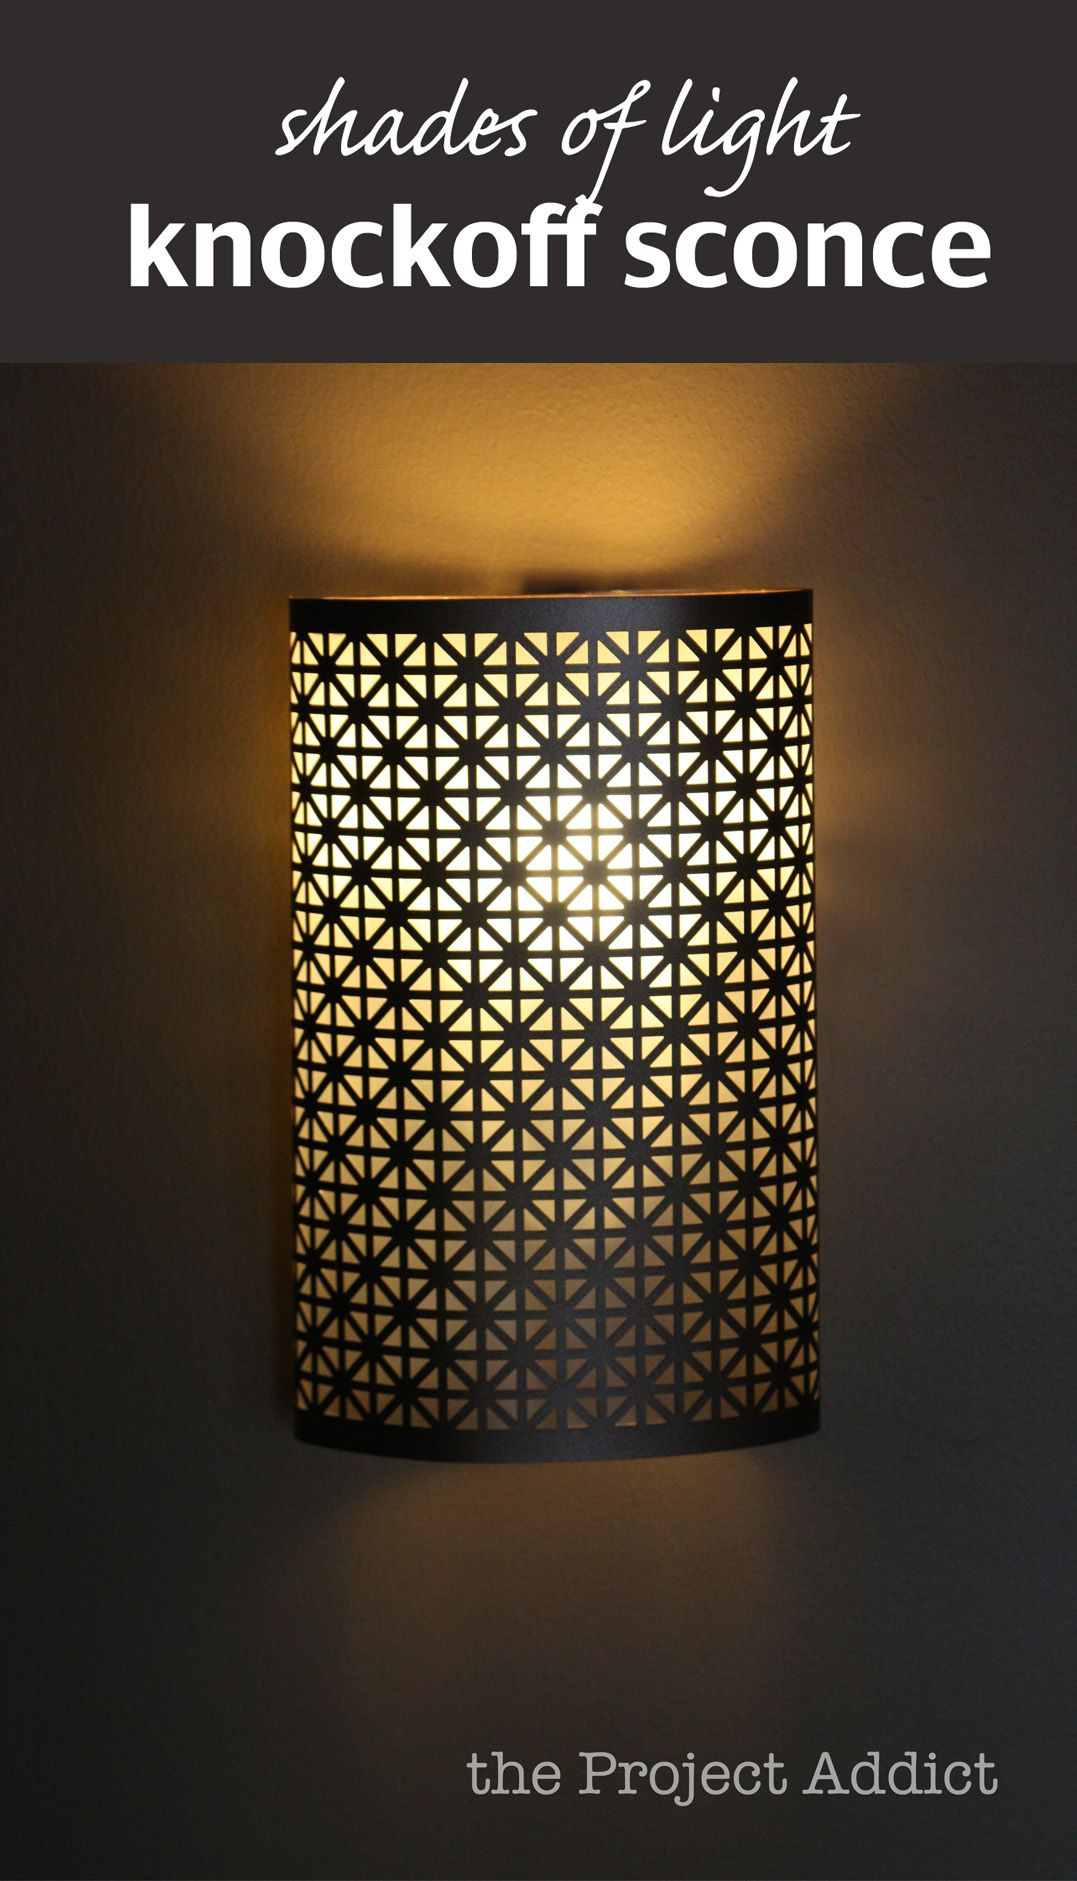 shades-light-knockoff-sconce1.jpg (1077×1881) | Duvar aplikleri ... for Diy Wall Sconce Shade  156eri